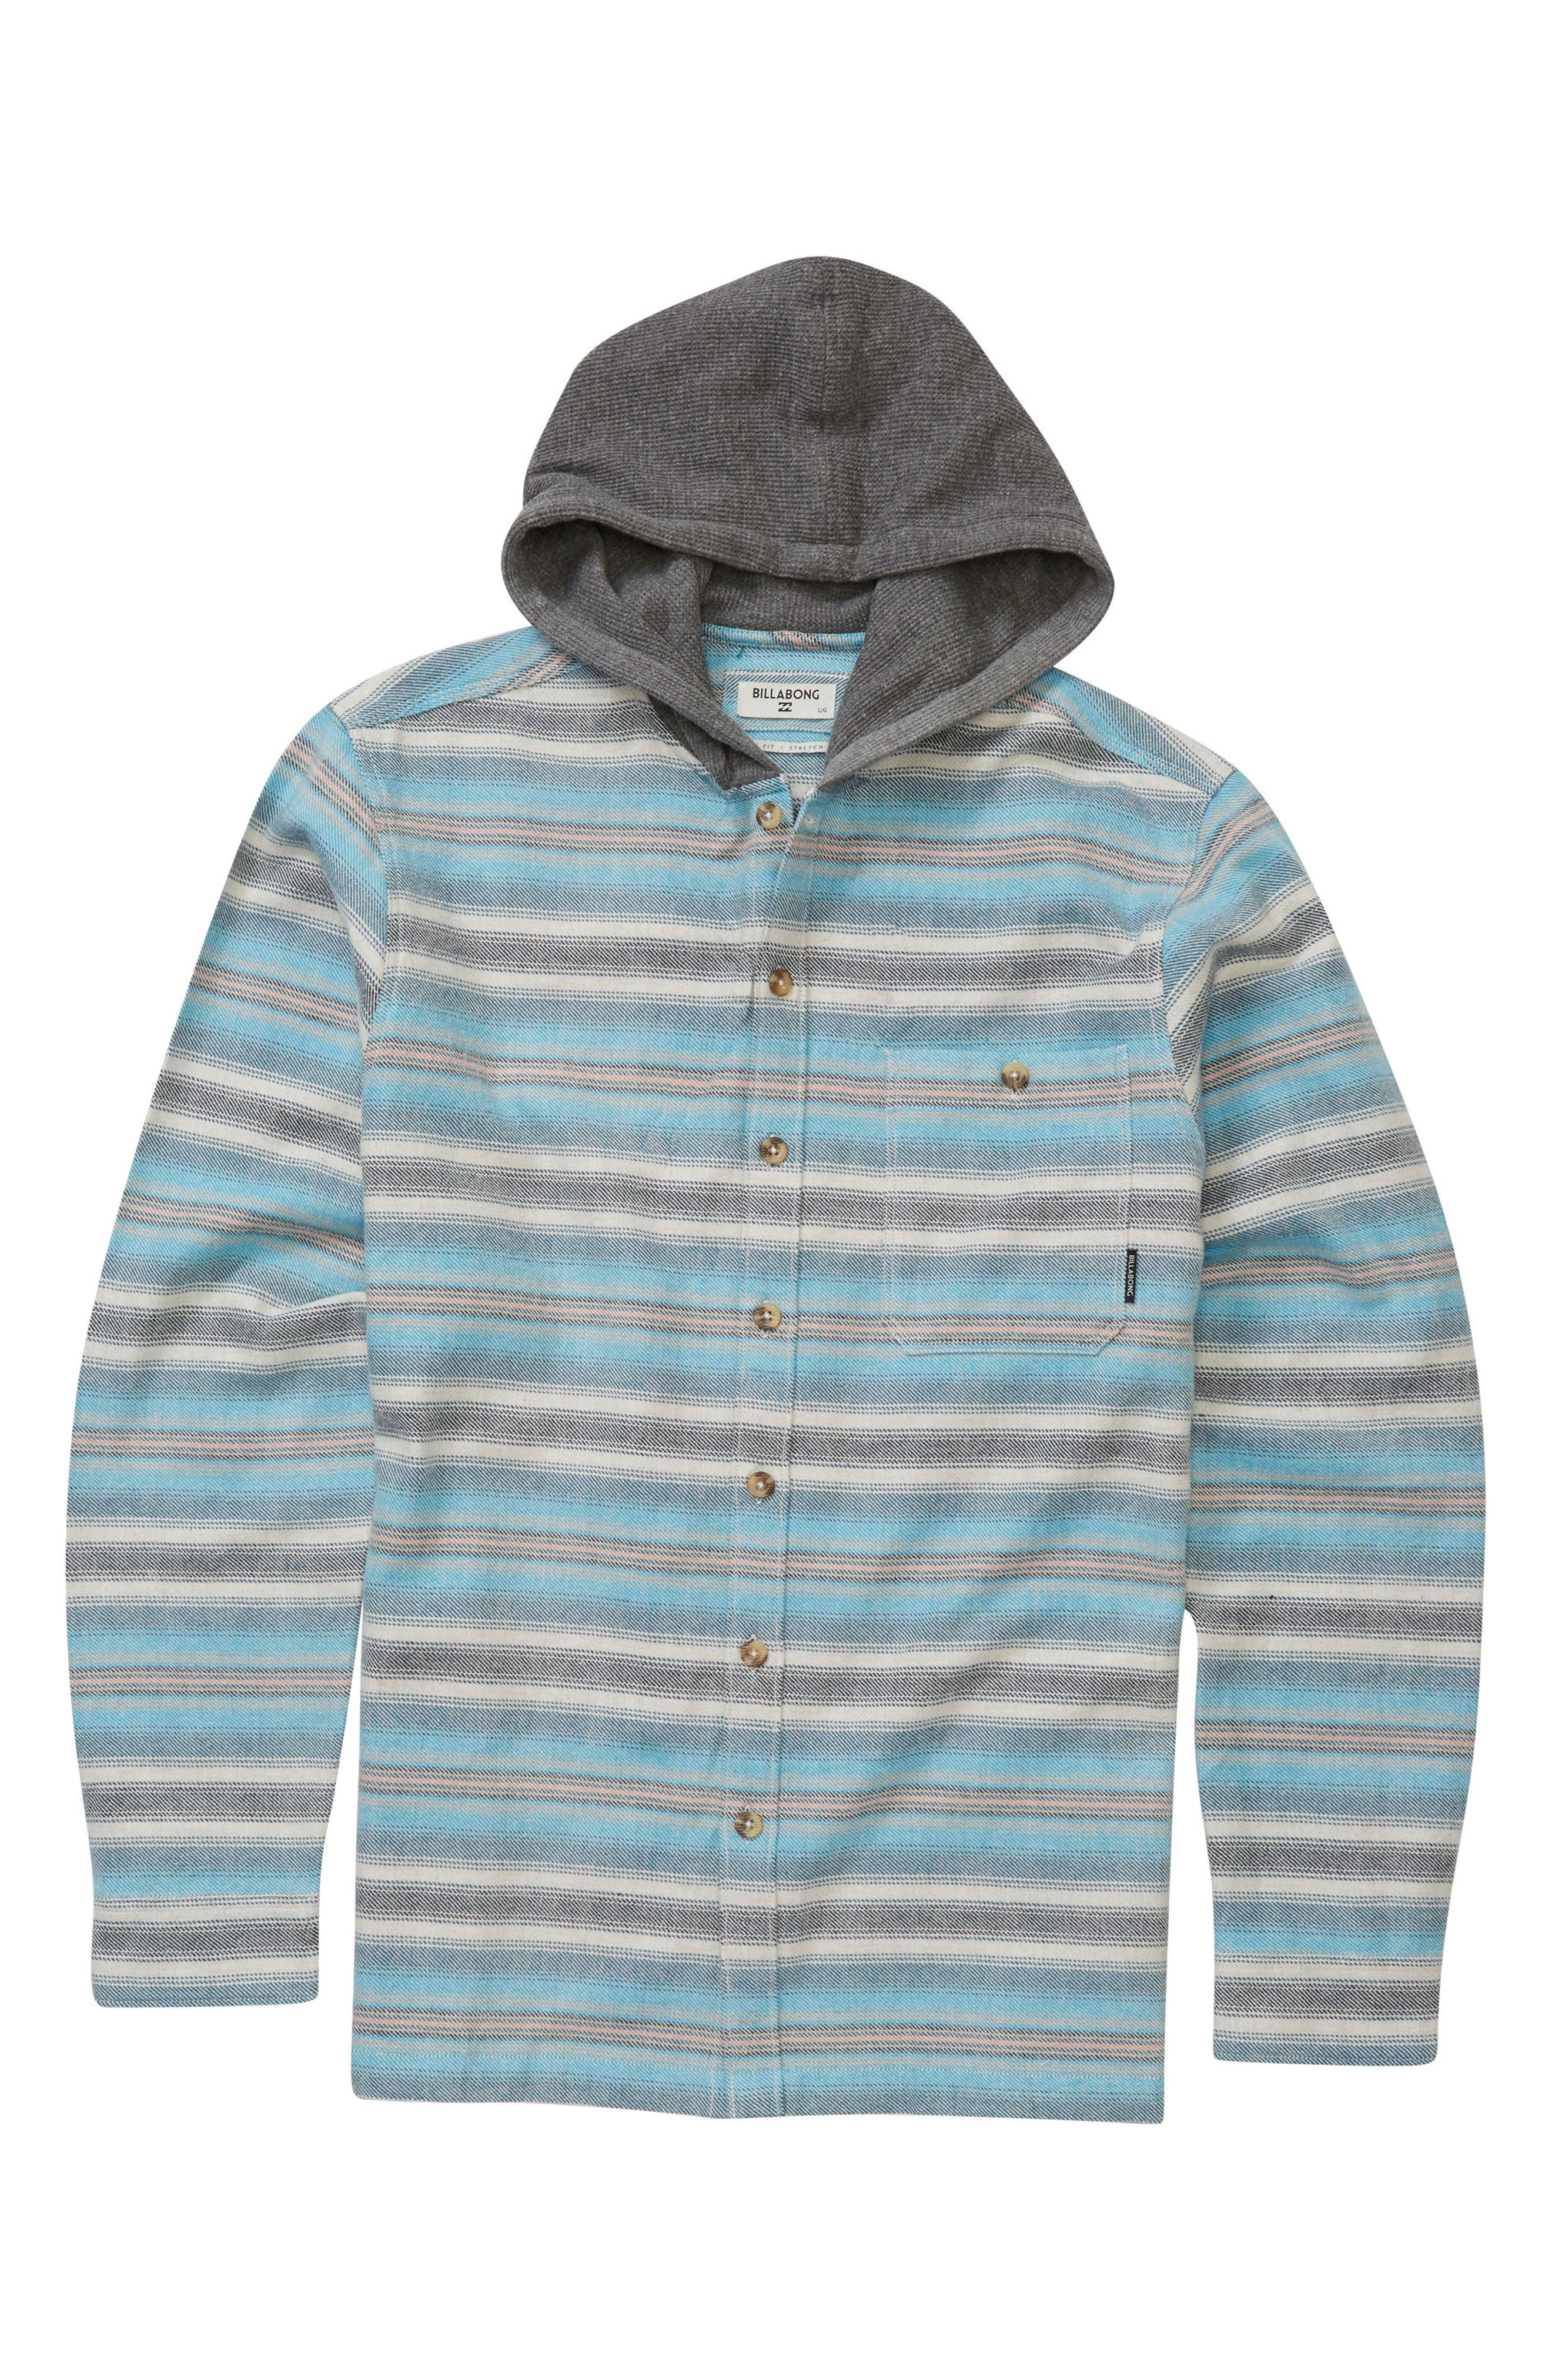 Baja Hooded Shirt,                             Main thumbnail 1, color,                             061